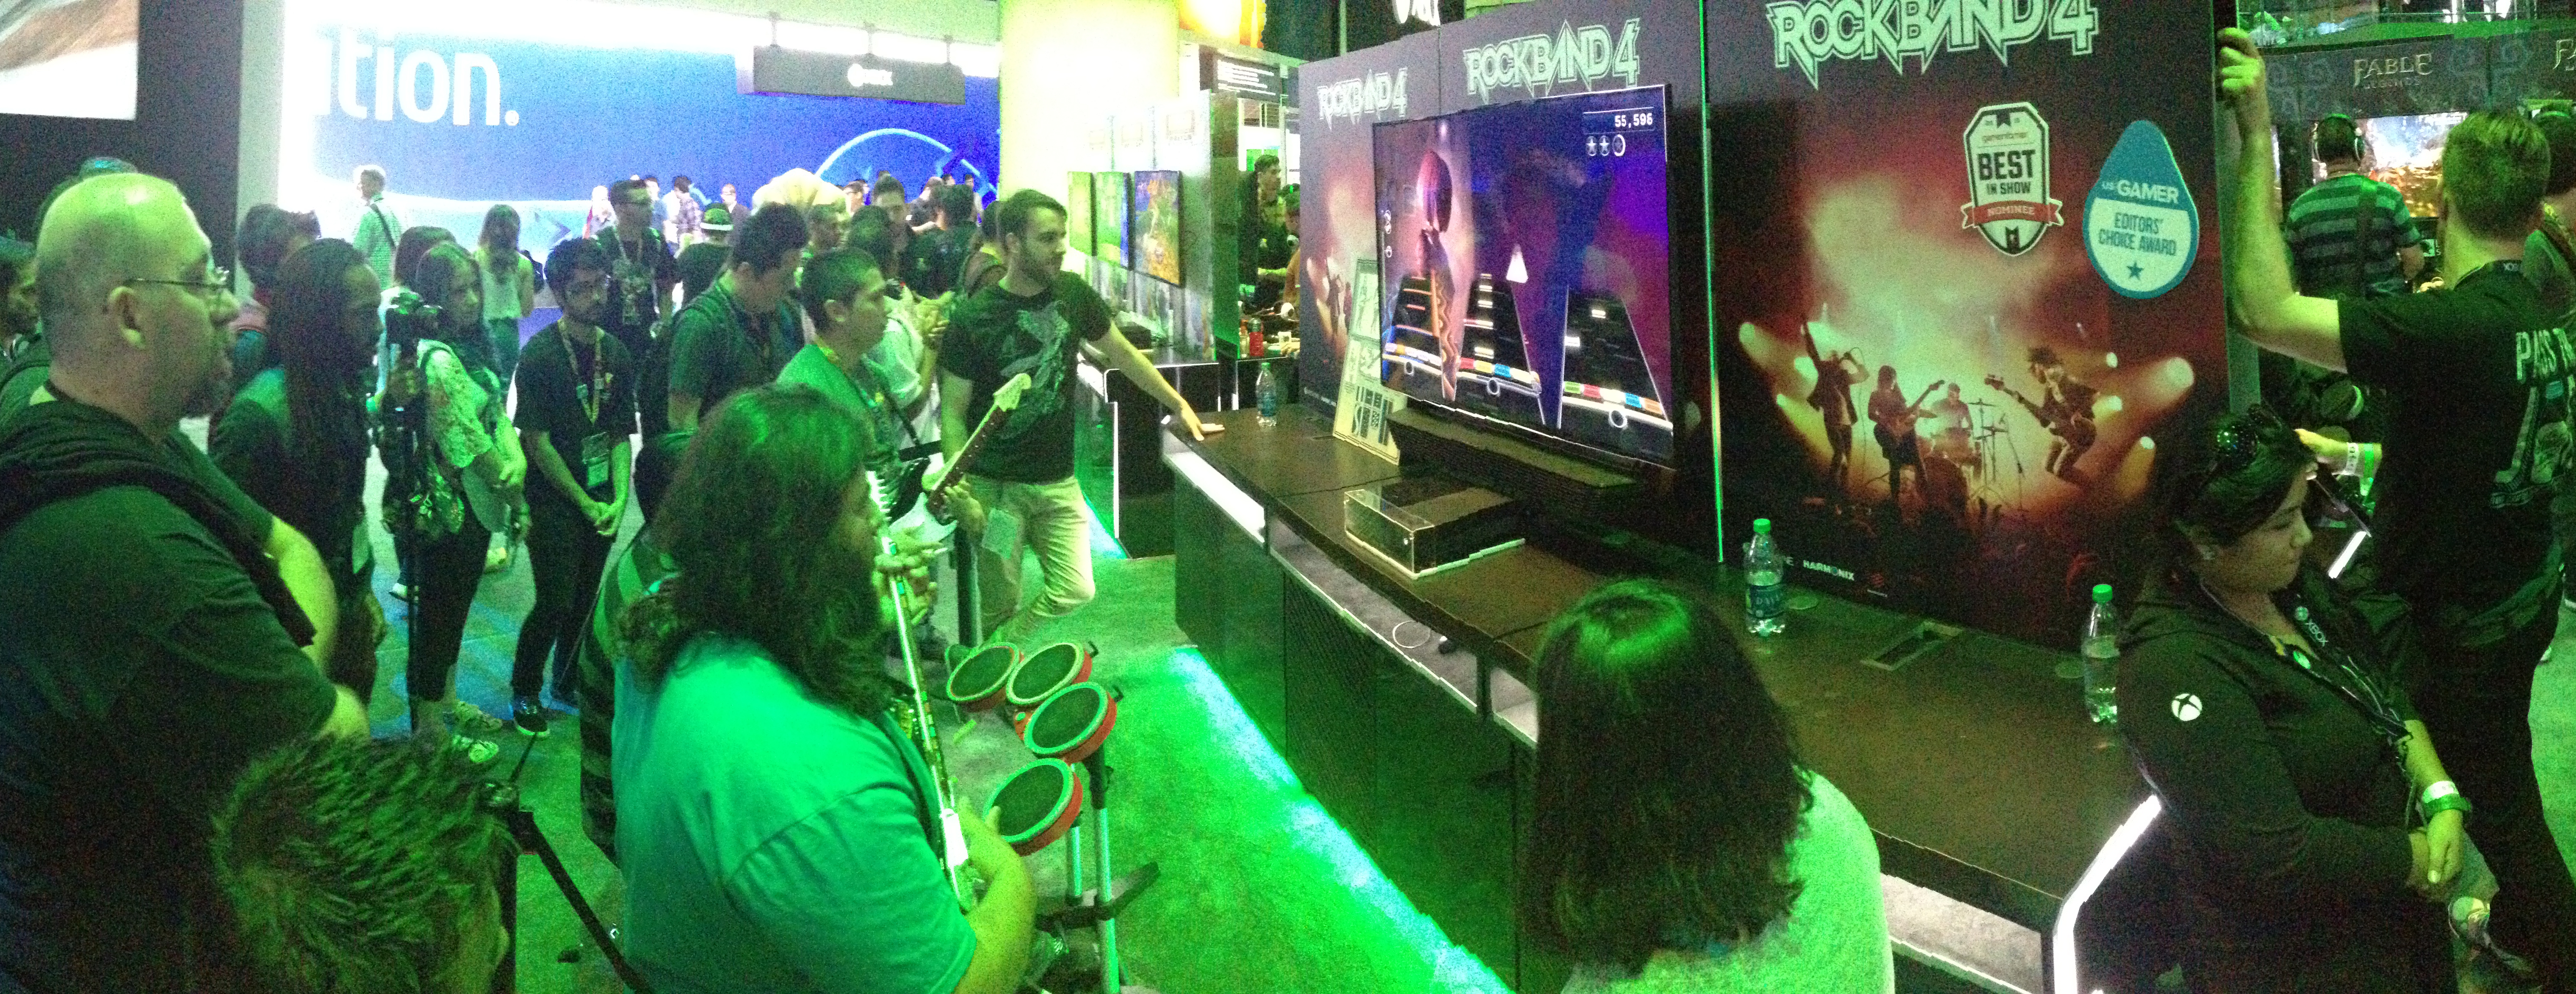 Rock Band 4 at the Xbox booth